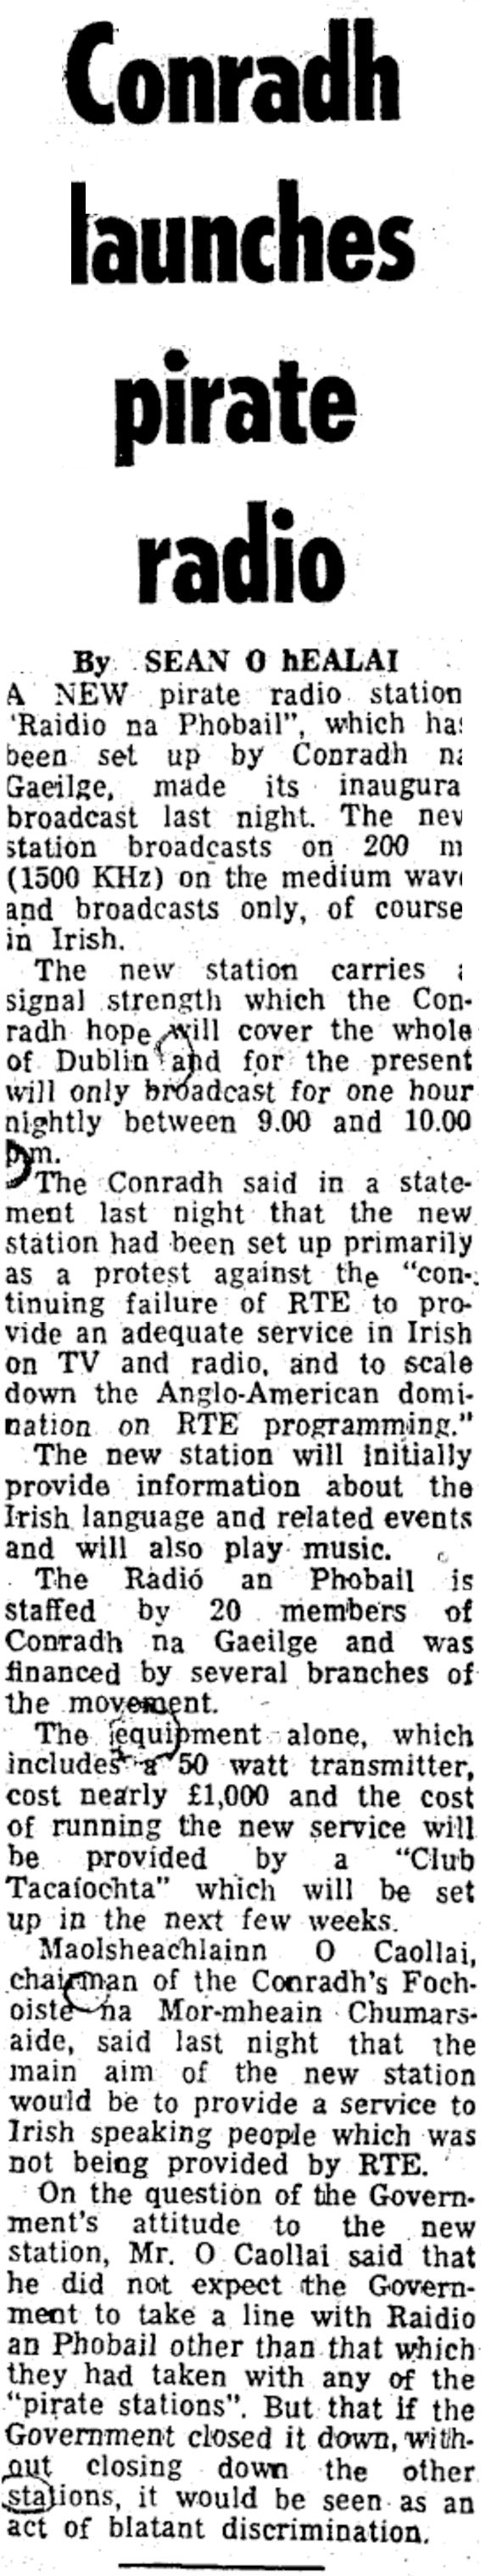 Raidió na Phobail launches - articles dated October 17th 1979